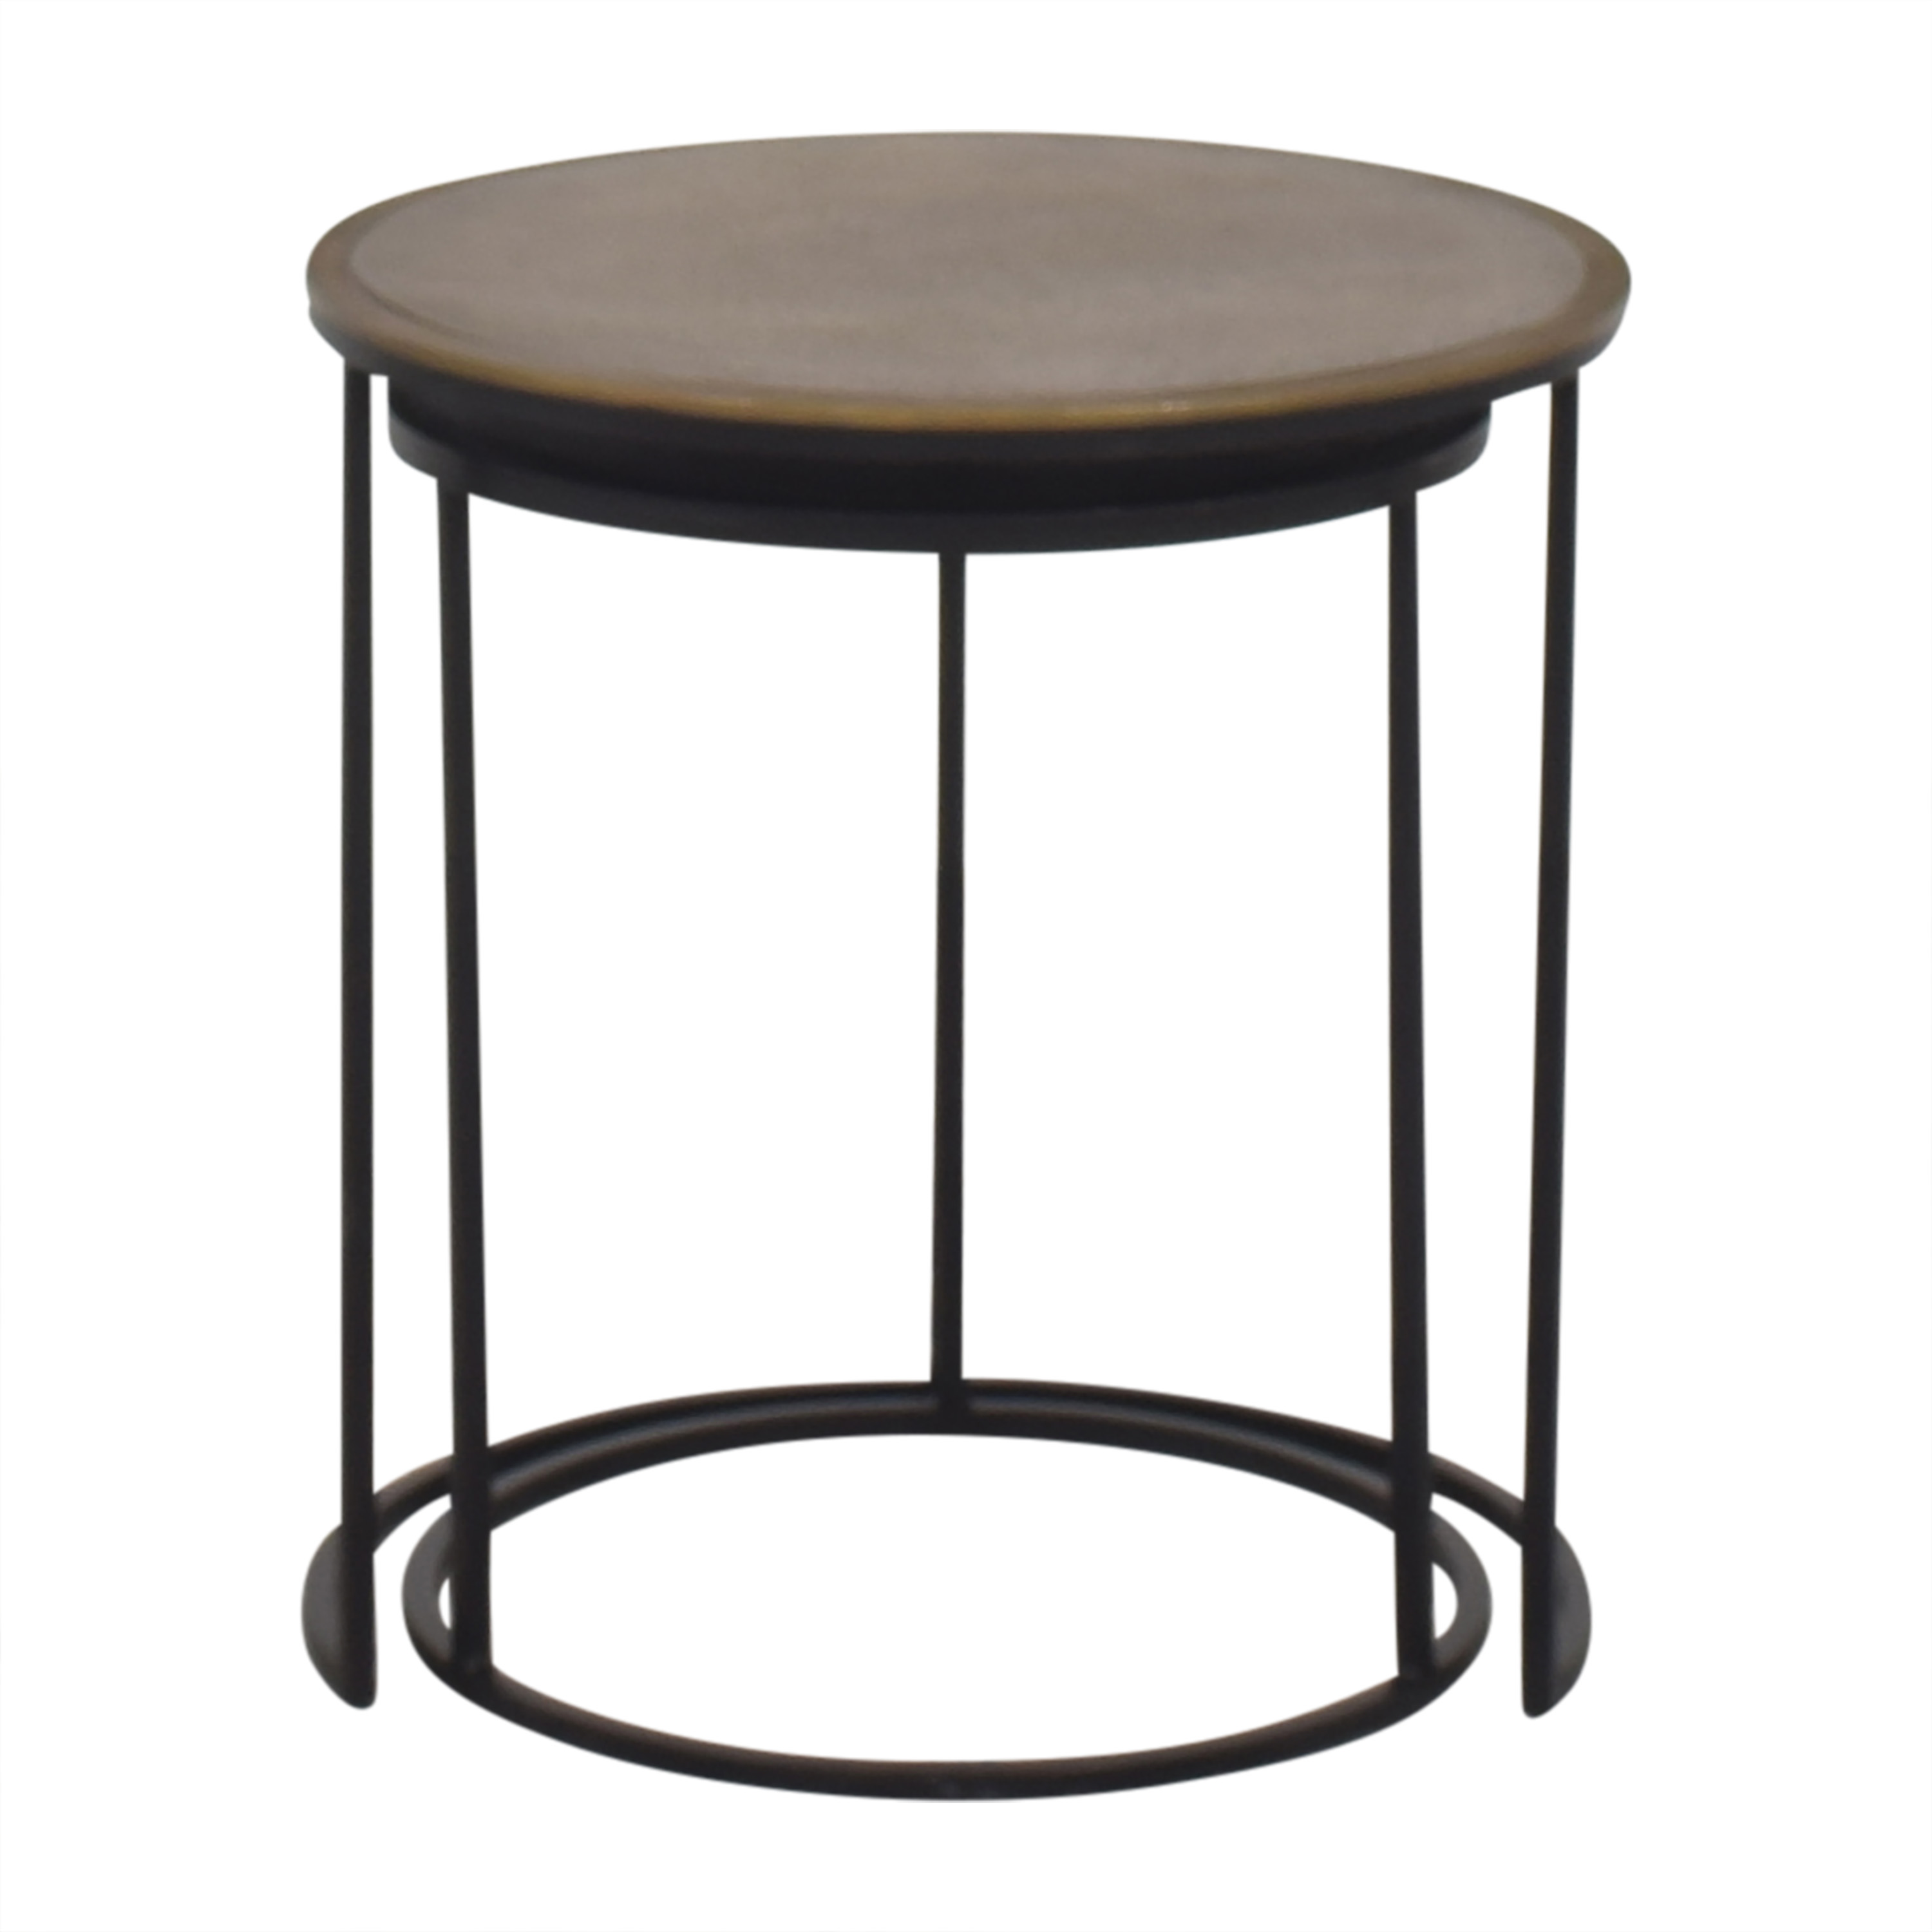 Crate & Barrel Crate & Barrel Knurl Nesting Accent Tables price